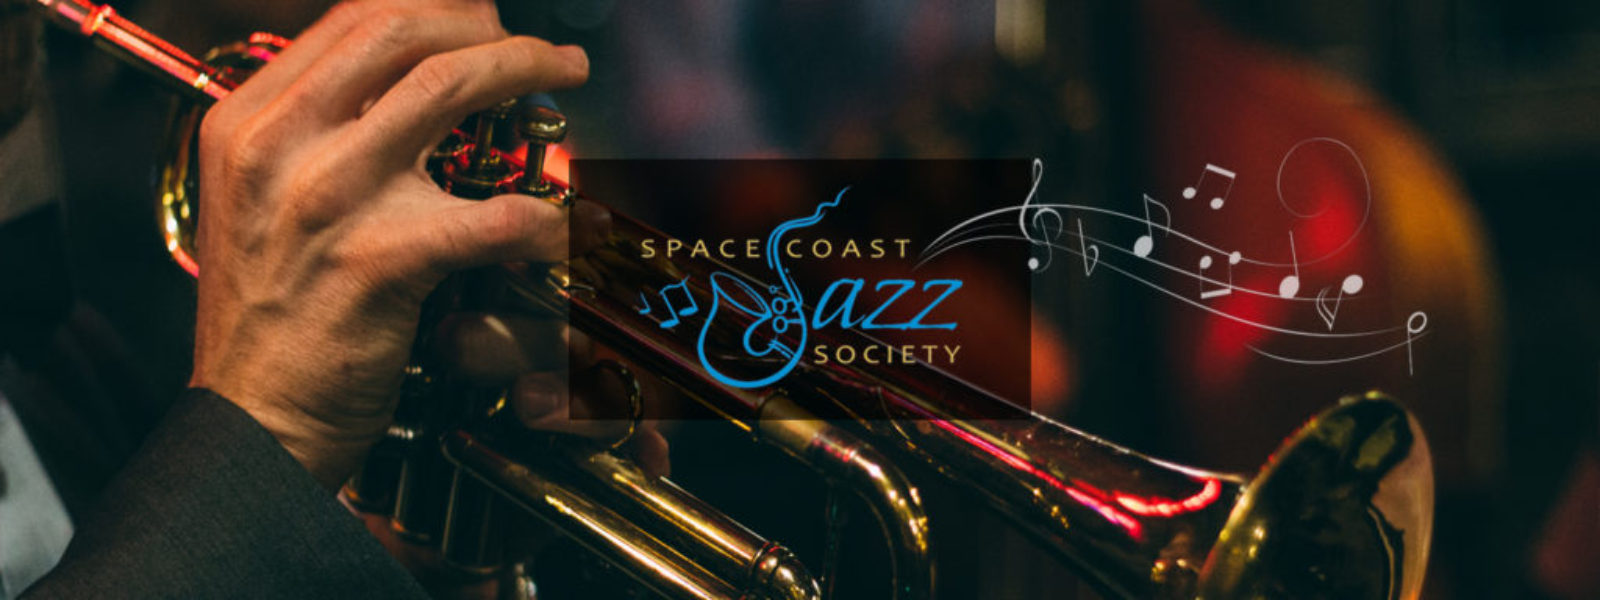 Space Coast Jazz Society 2